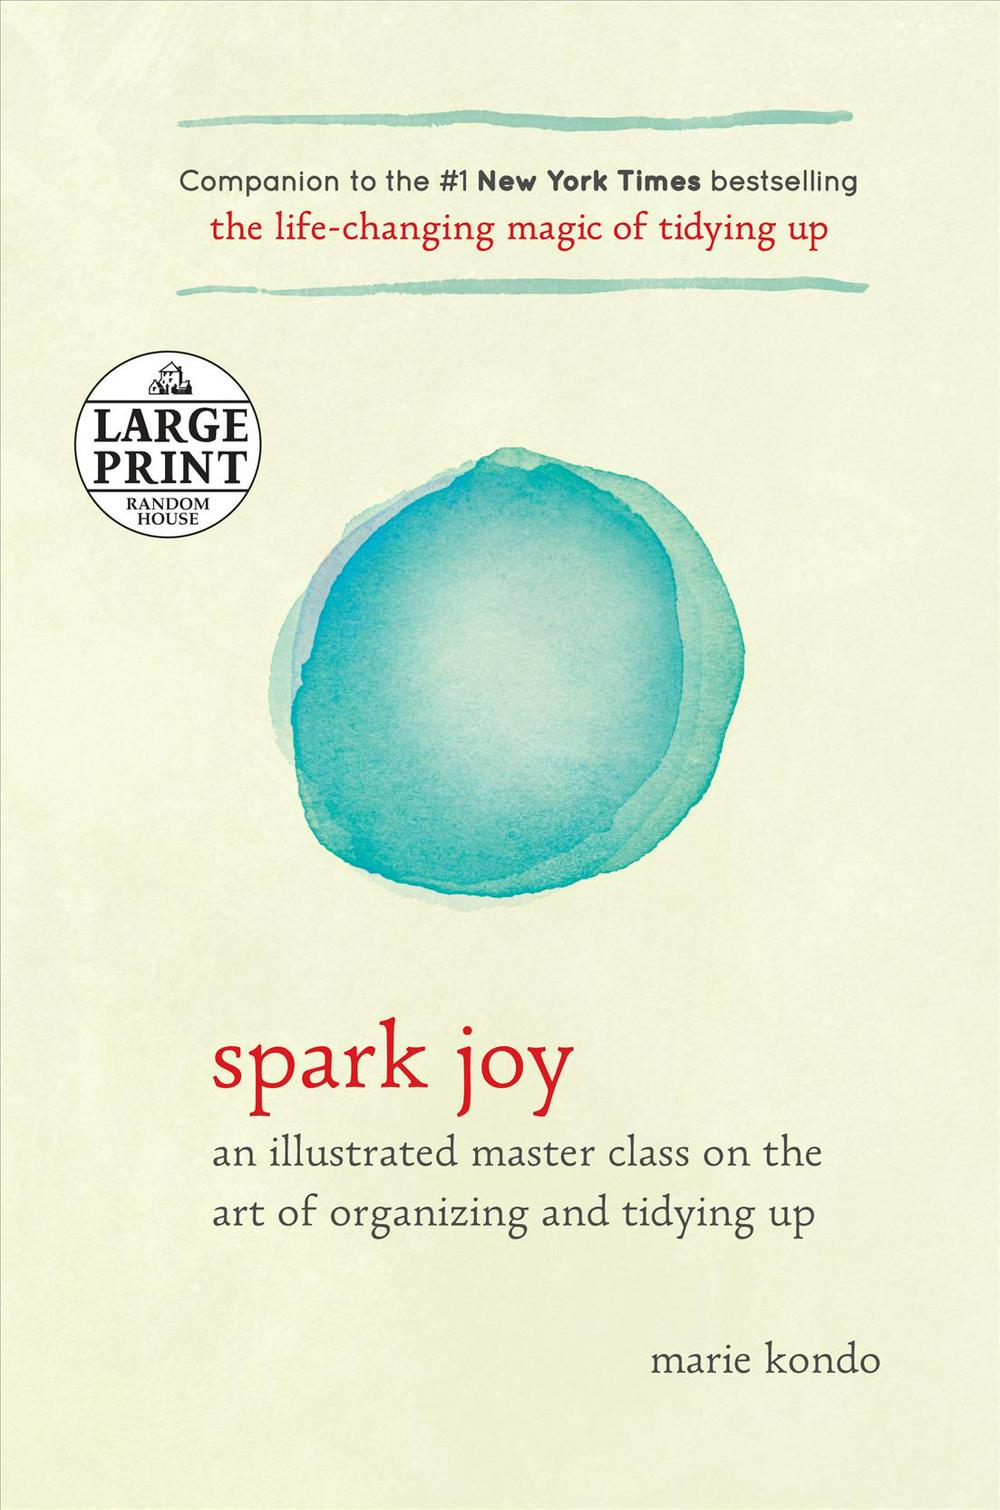 Spark Joy: An Illustrated Master Class on the Art of Organizing and Tidying Up by Marie Kondo, ISBN: 9780735207783